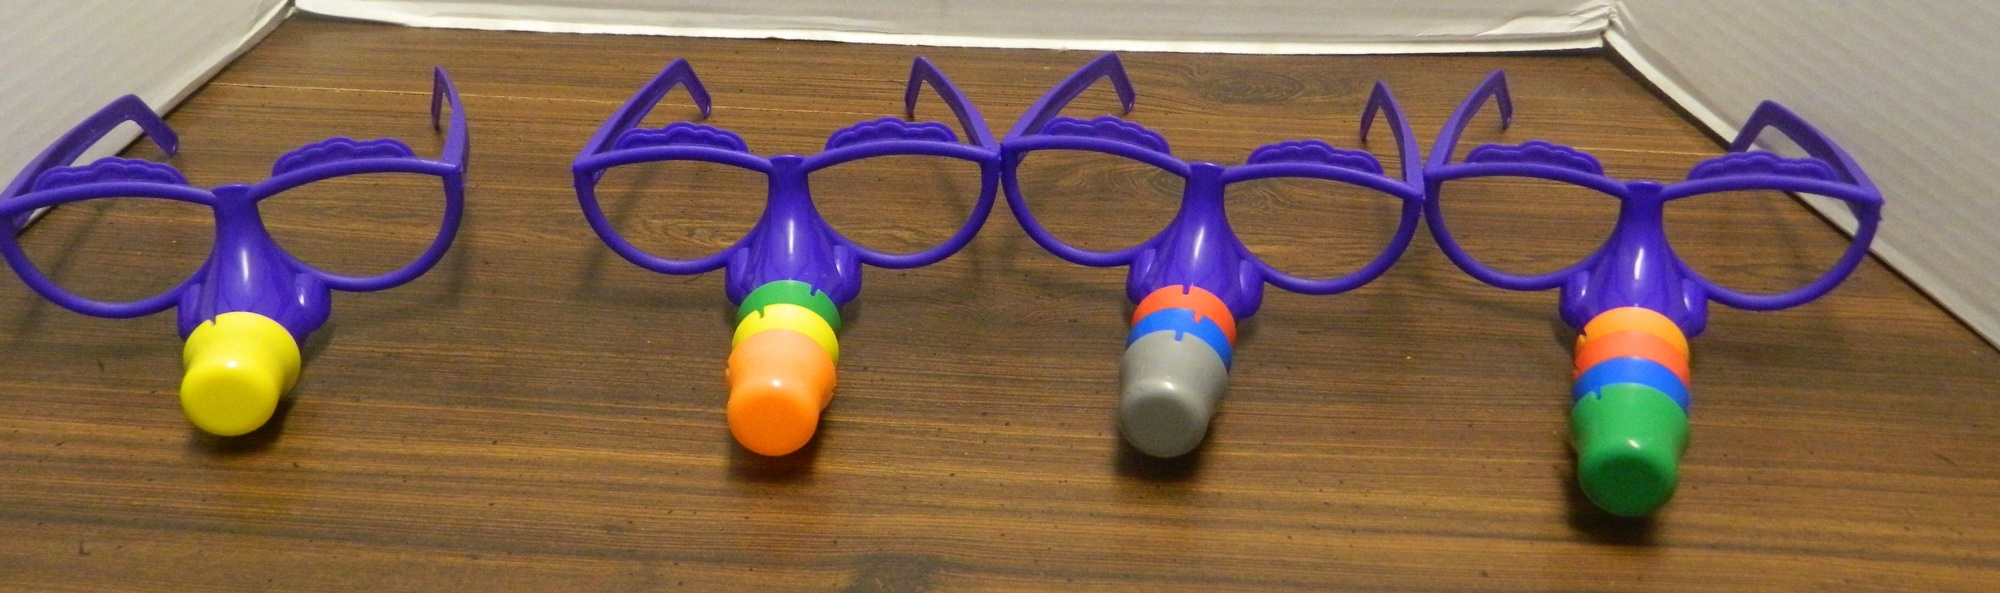 Fibber 2012 Board Game Review And Rules Geeky Hobbies